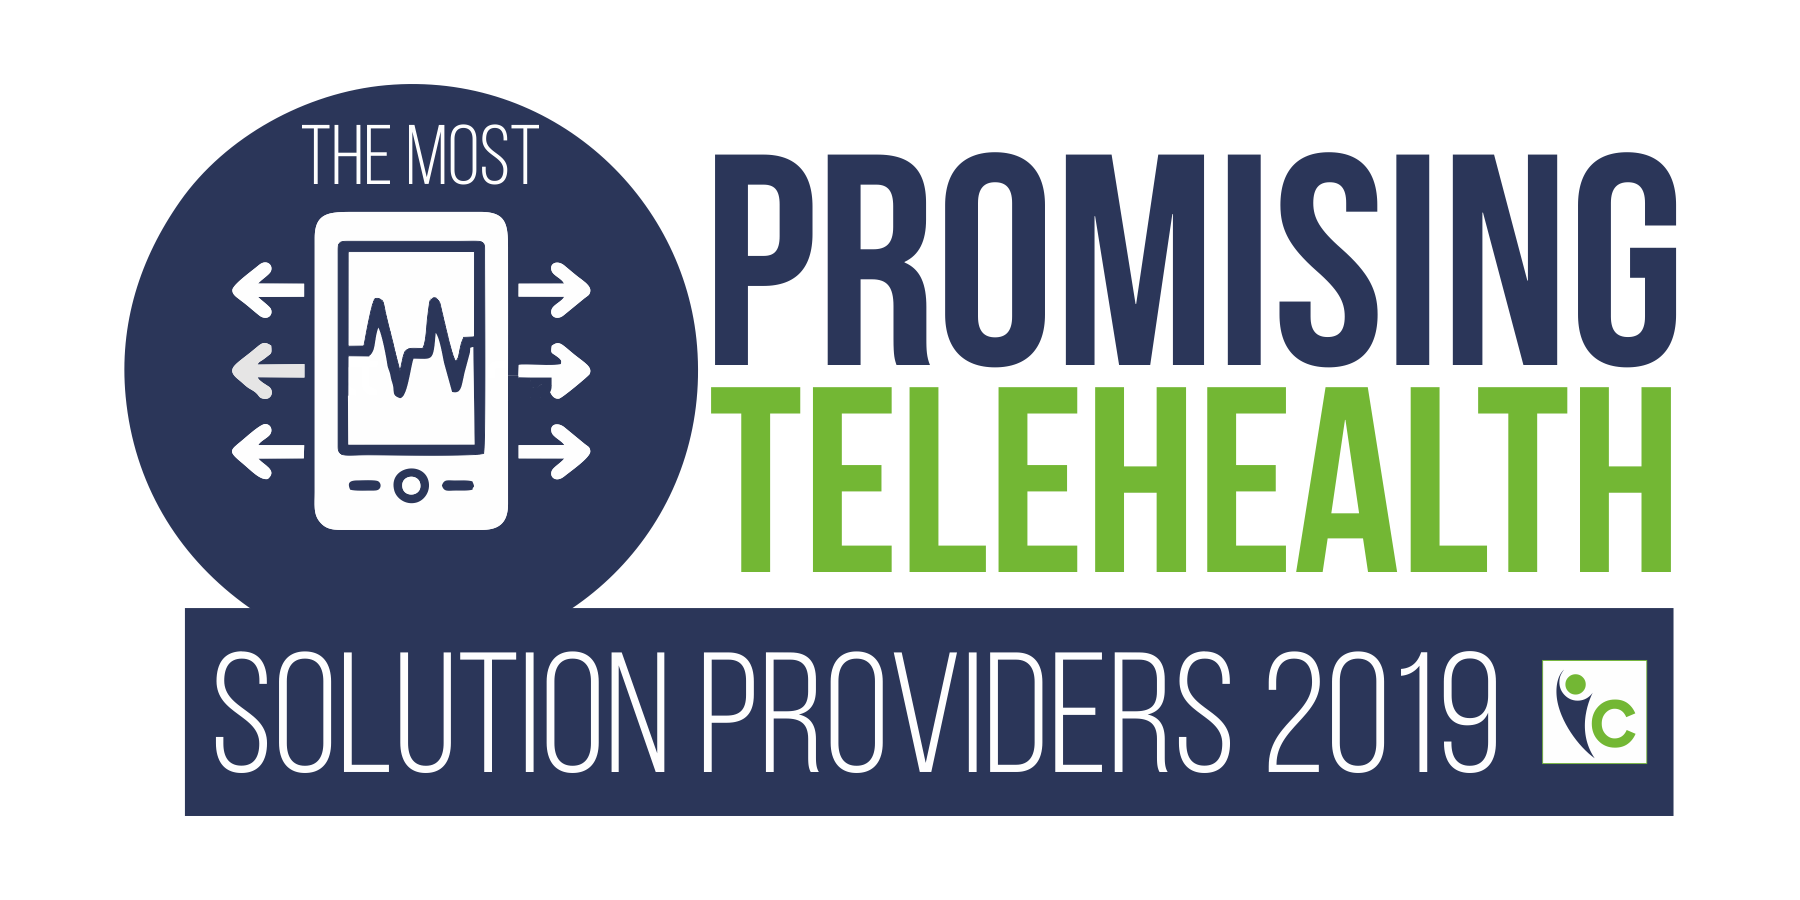 The Most Promising Telehealth Solution Providers 2019